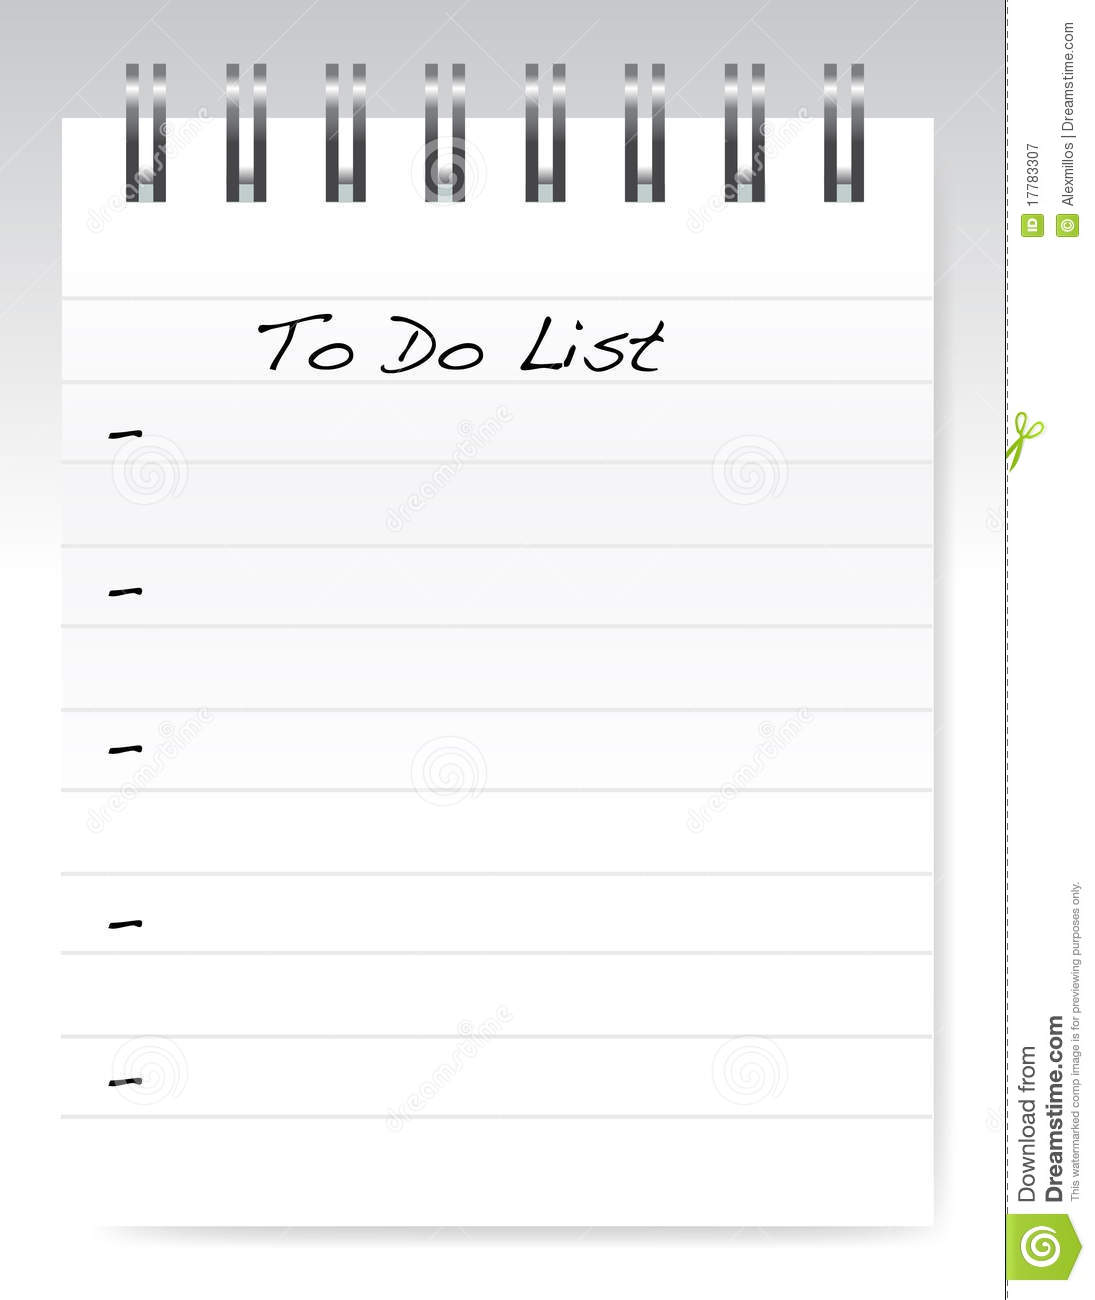 free to do list - android-app.info